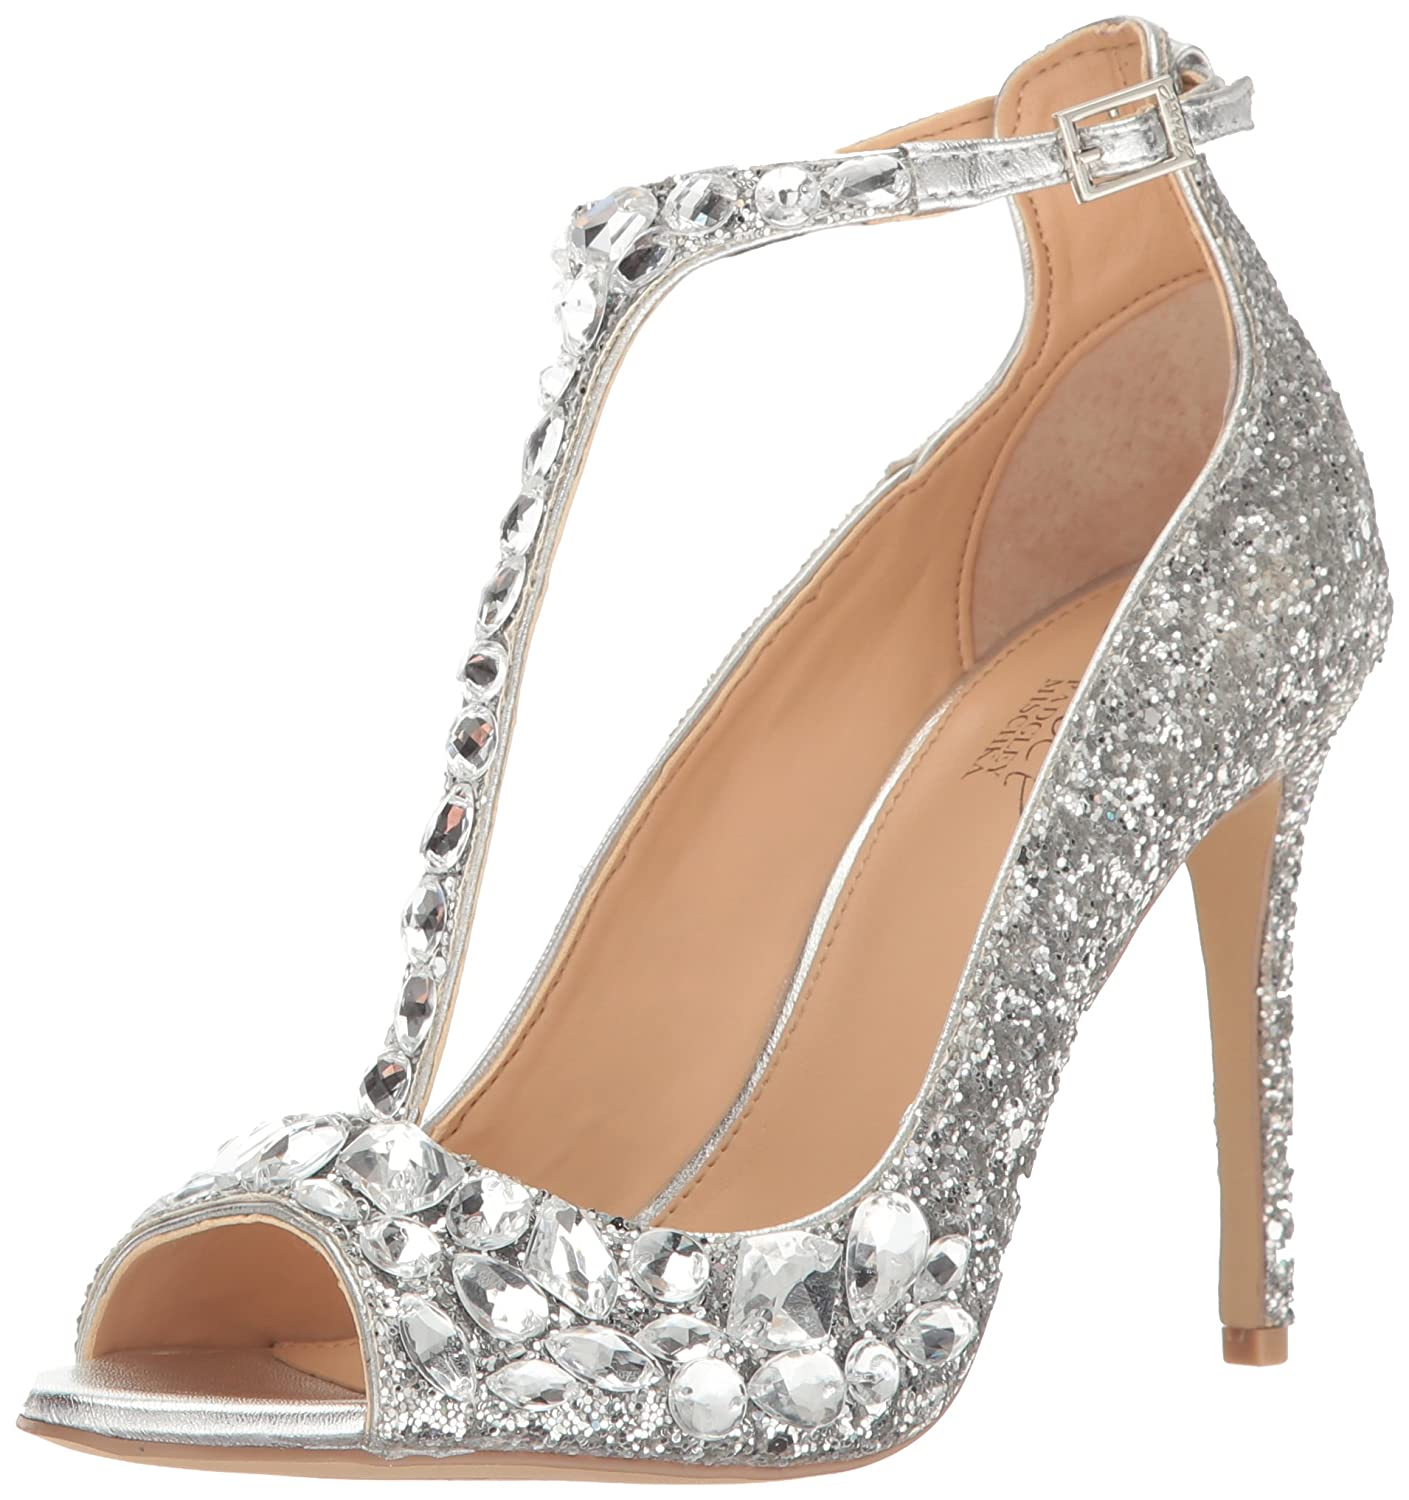 a35ecd6139c12 Amazon.com  Jewel Badgley Mischka Women s Conroy Dress Sandal  Shoes